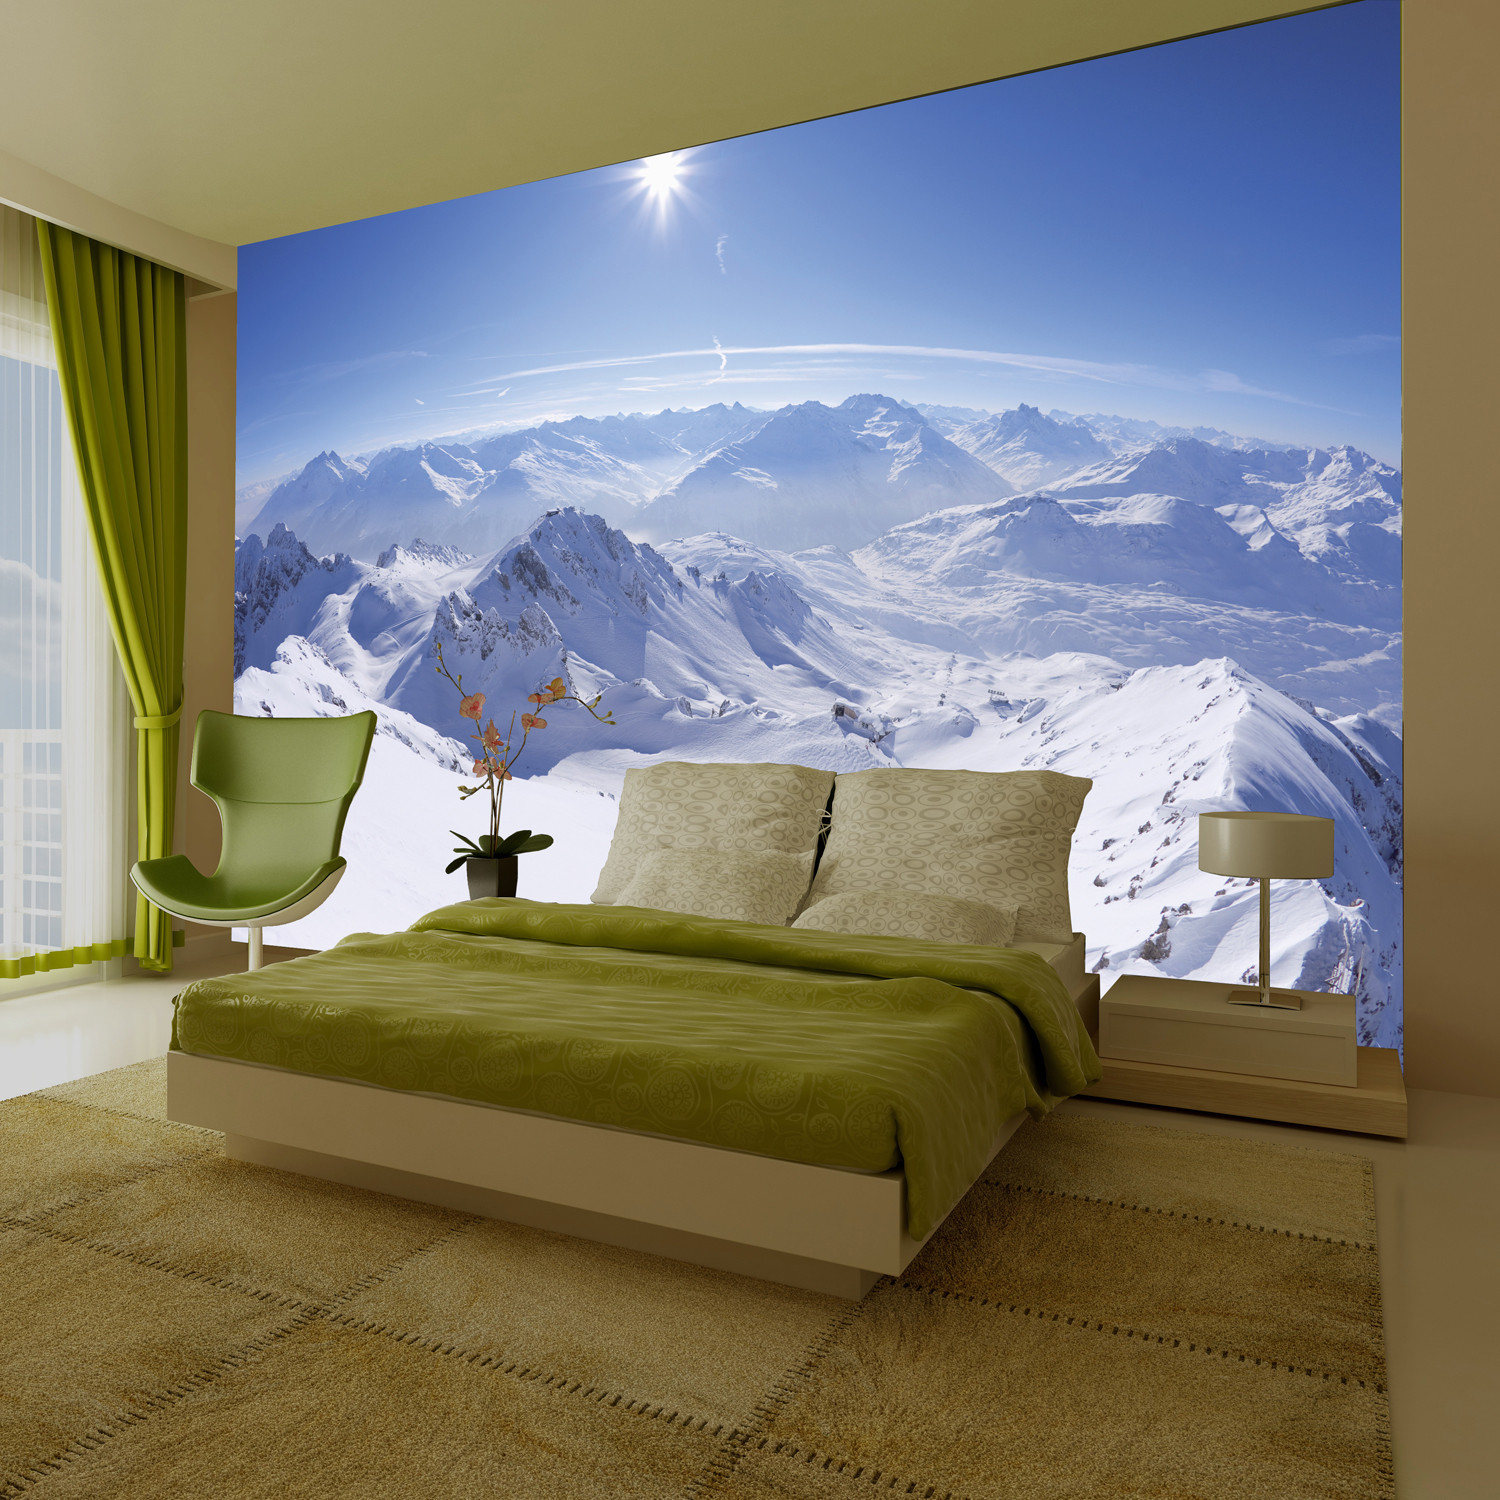 Wonderful Wallpaper Mountain Bedroom - 2035300d04872c8b26b6e9d553cdc616_large  Trends_626651.jpg?1401753134